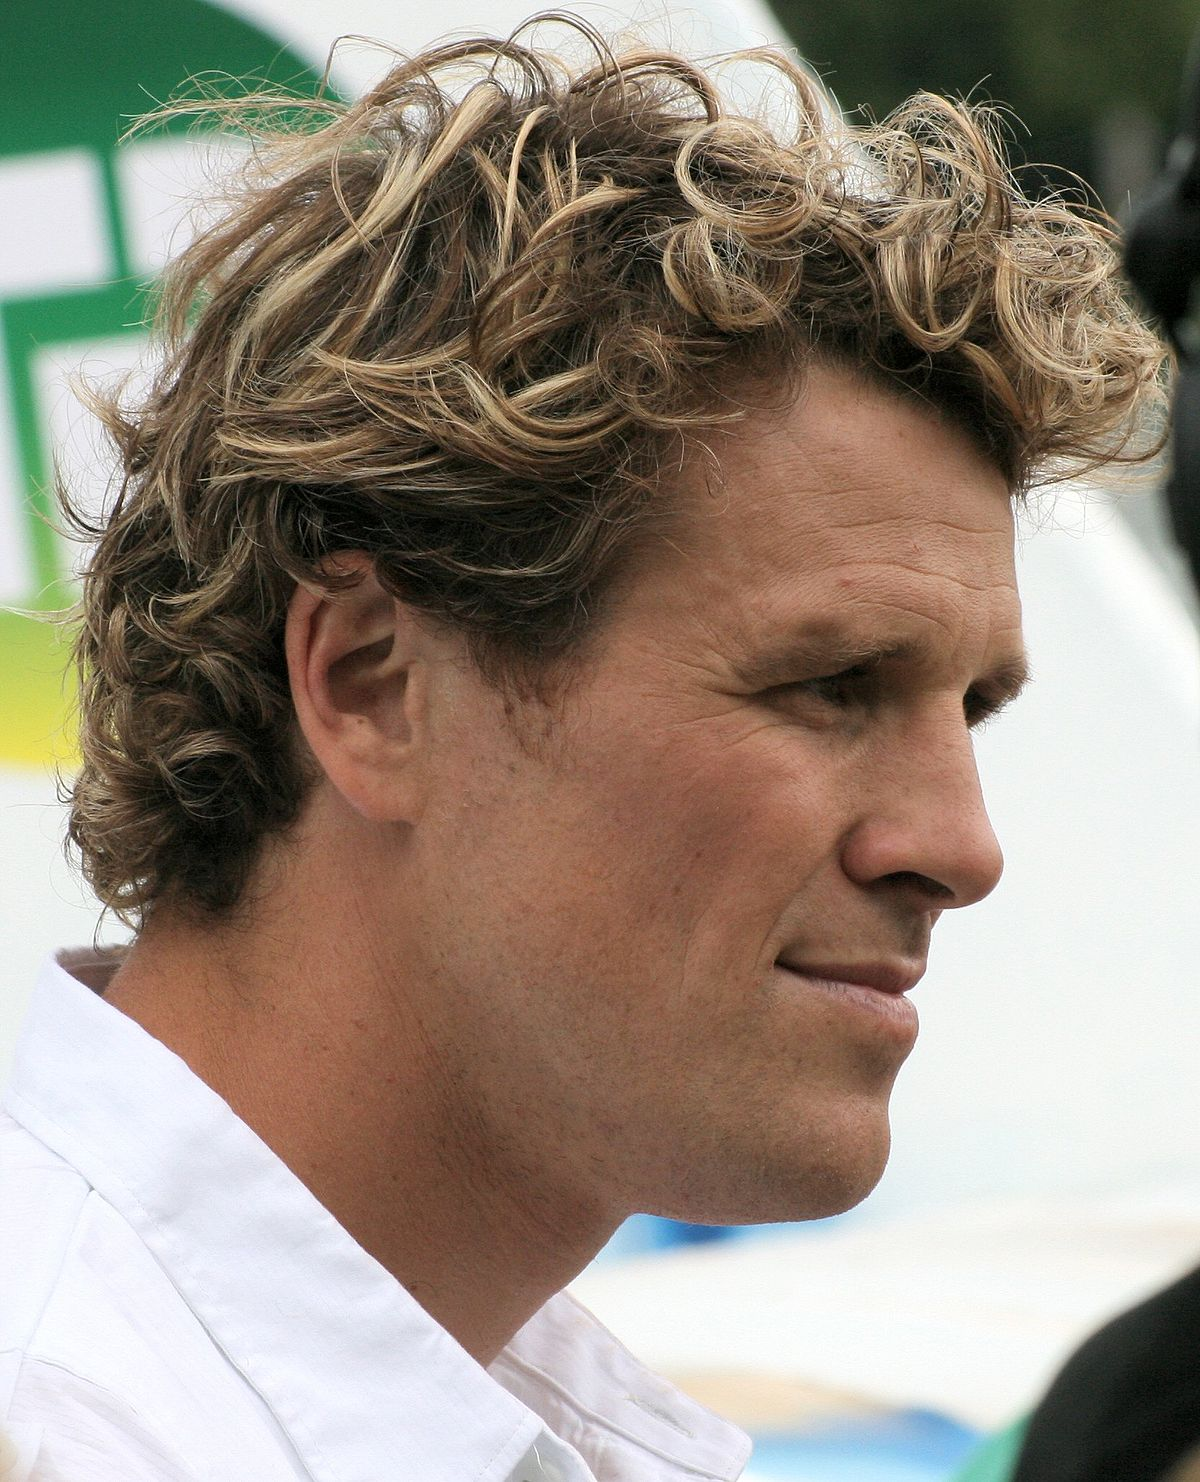 James Cracknell Wikipedia